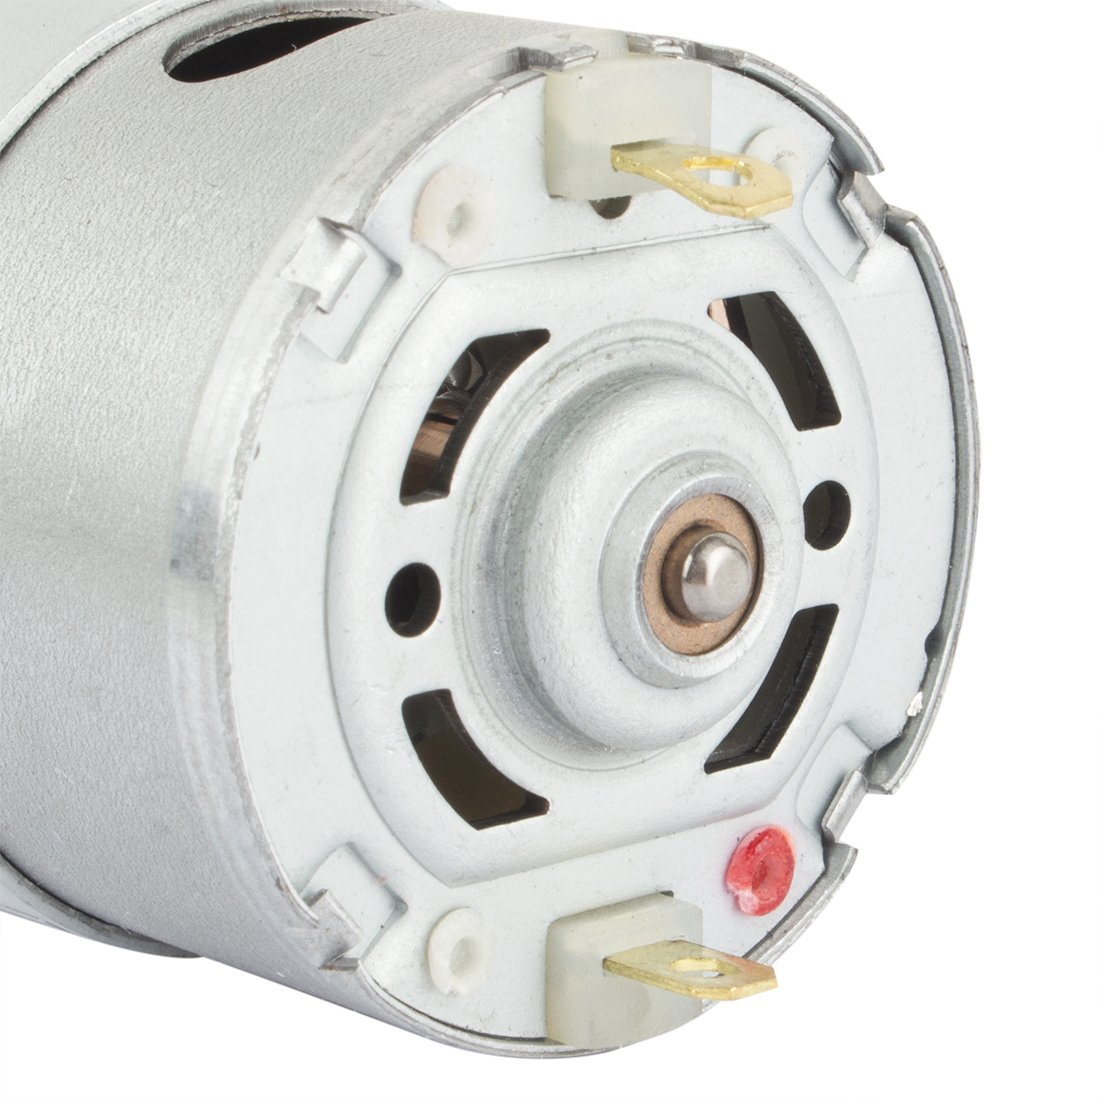 15mm Length a16093000ux0116 uxcell 200RPM DC 24V Micro Gear Box Motor Speed Reduction Electric Gearbox Eccentric Output Shaft with 6mm Diameter